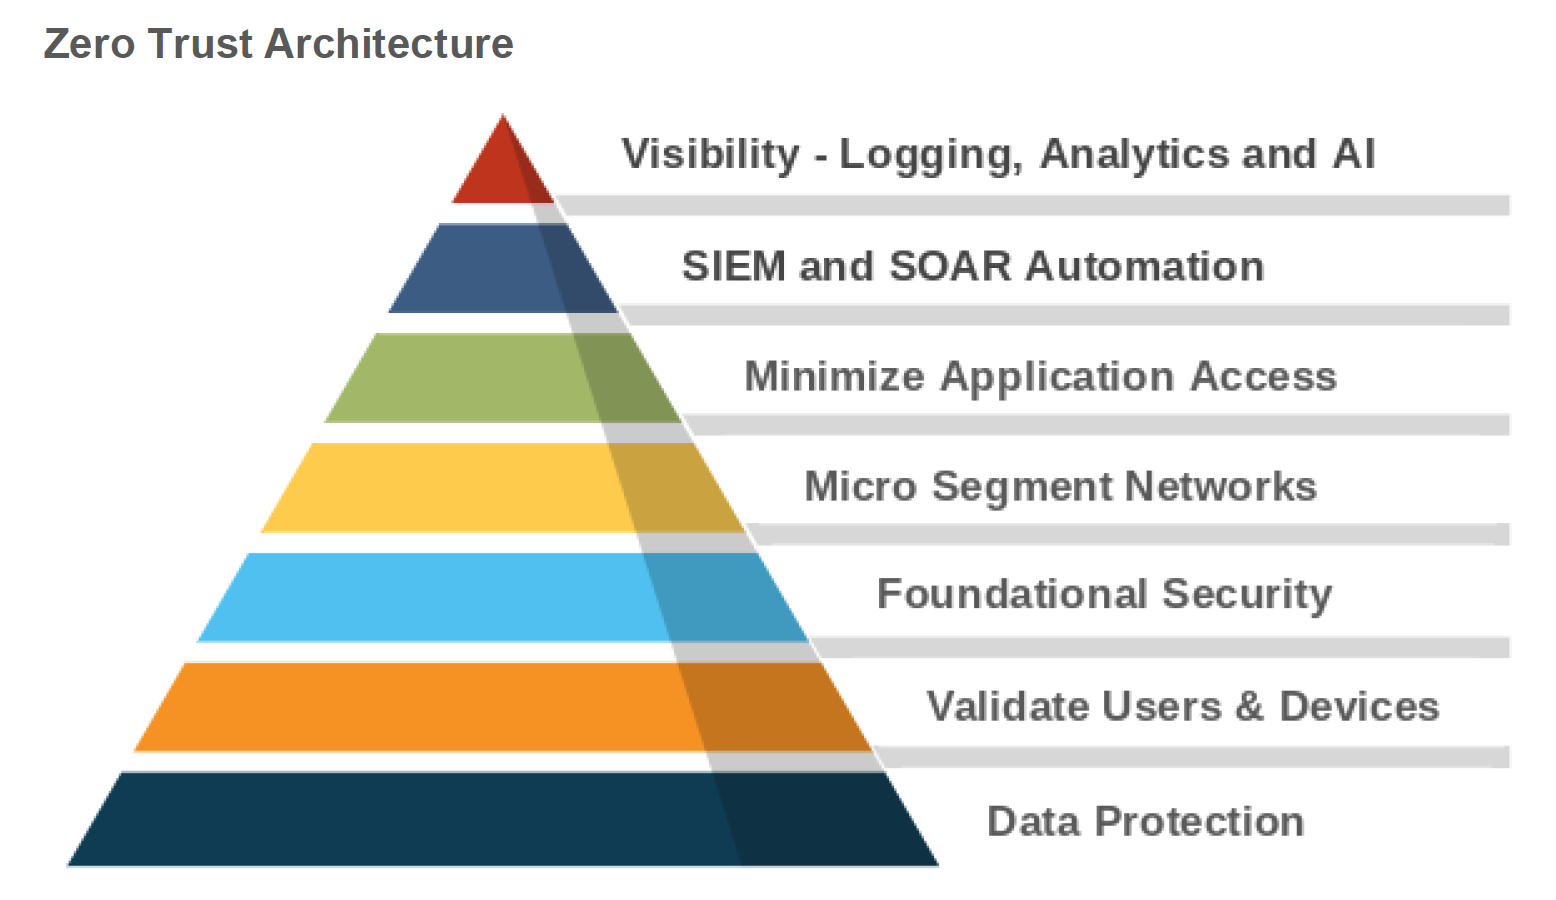 Figure 1: Key capabilities of a Zero Trust architecture